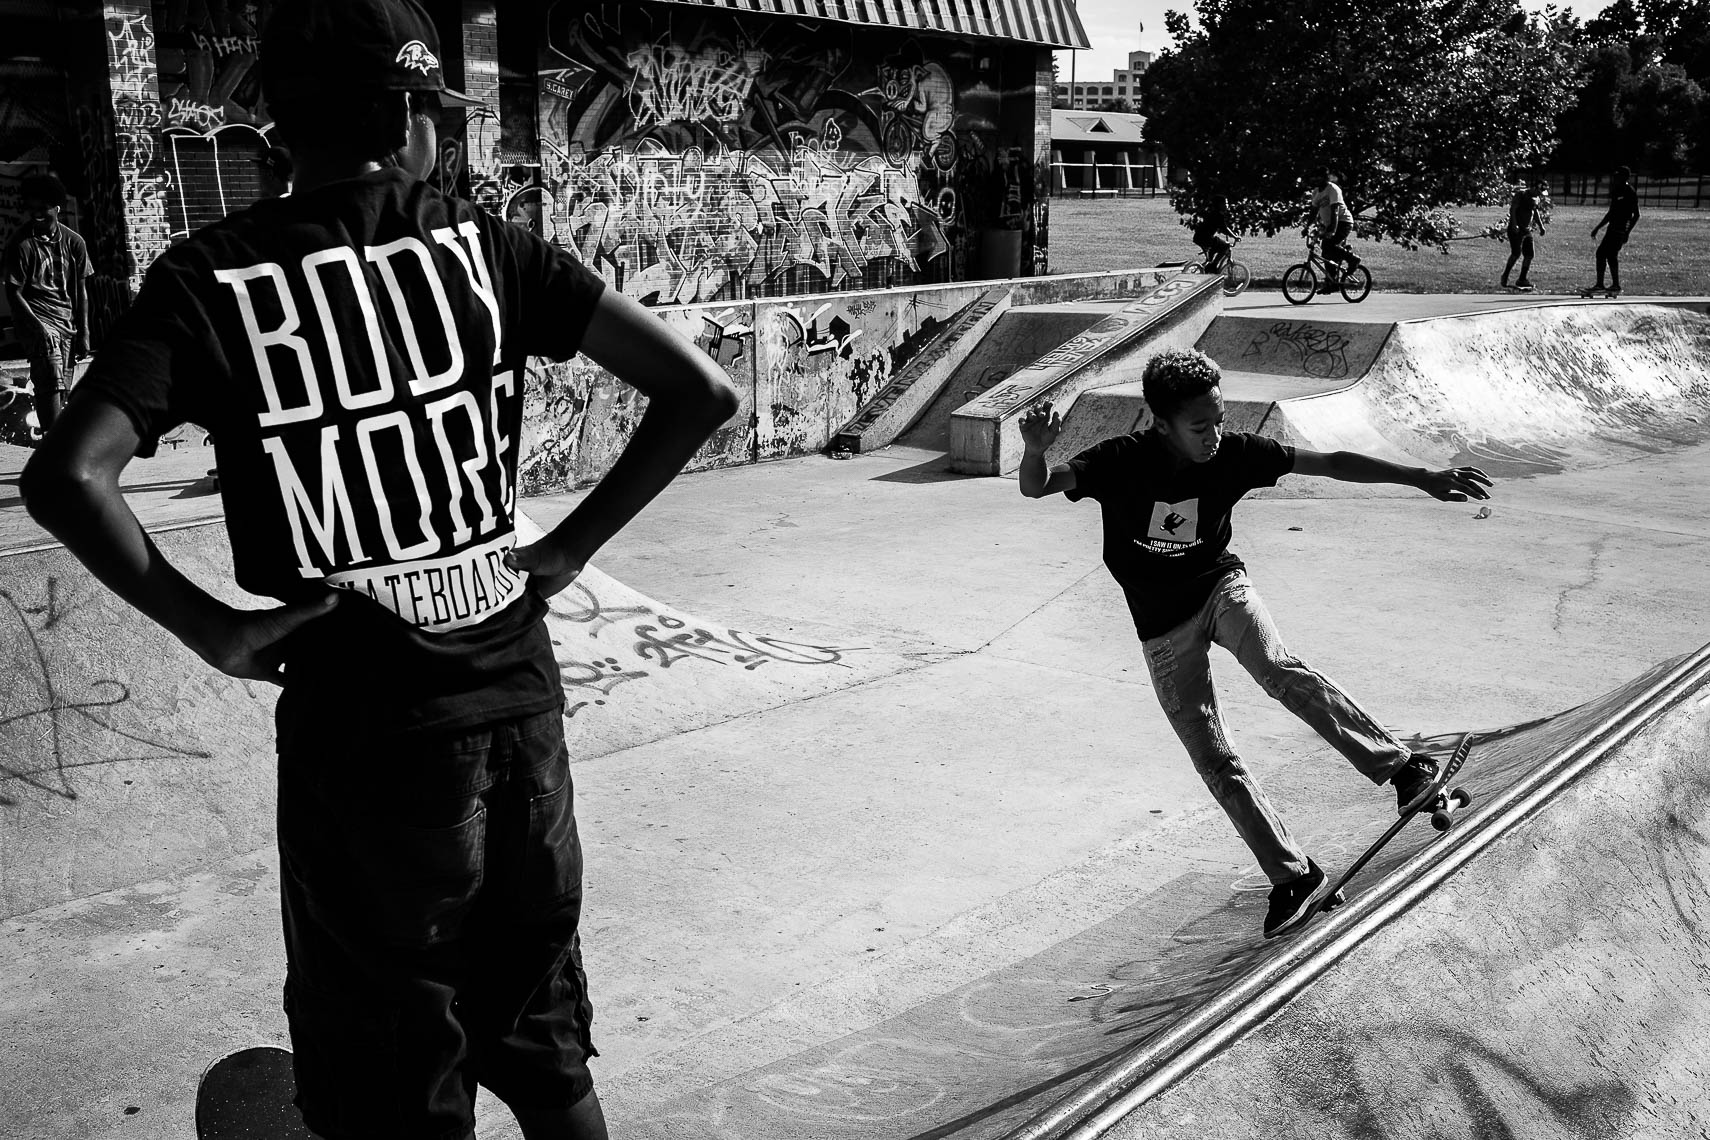 milksquad01_ Milksquad was a group of African American Baltimore youth skateboarders sponsored by Milkcrate Athletics NYC who skateboard in Baltimore city youth culture documentary photography project